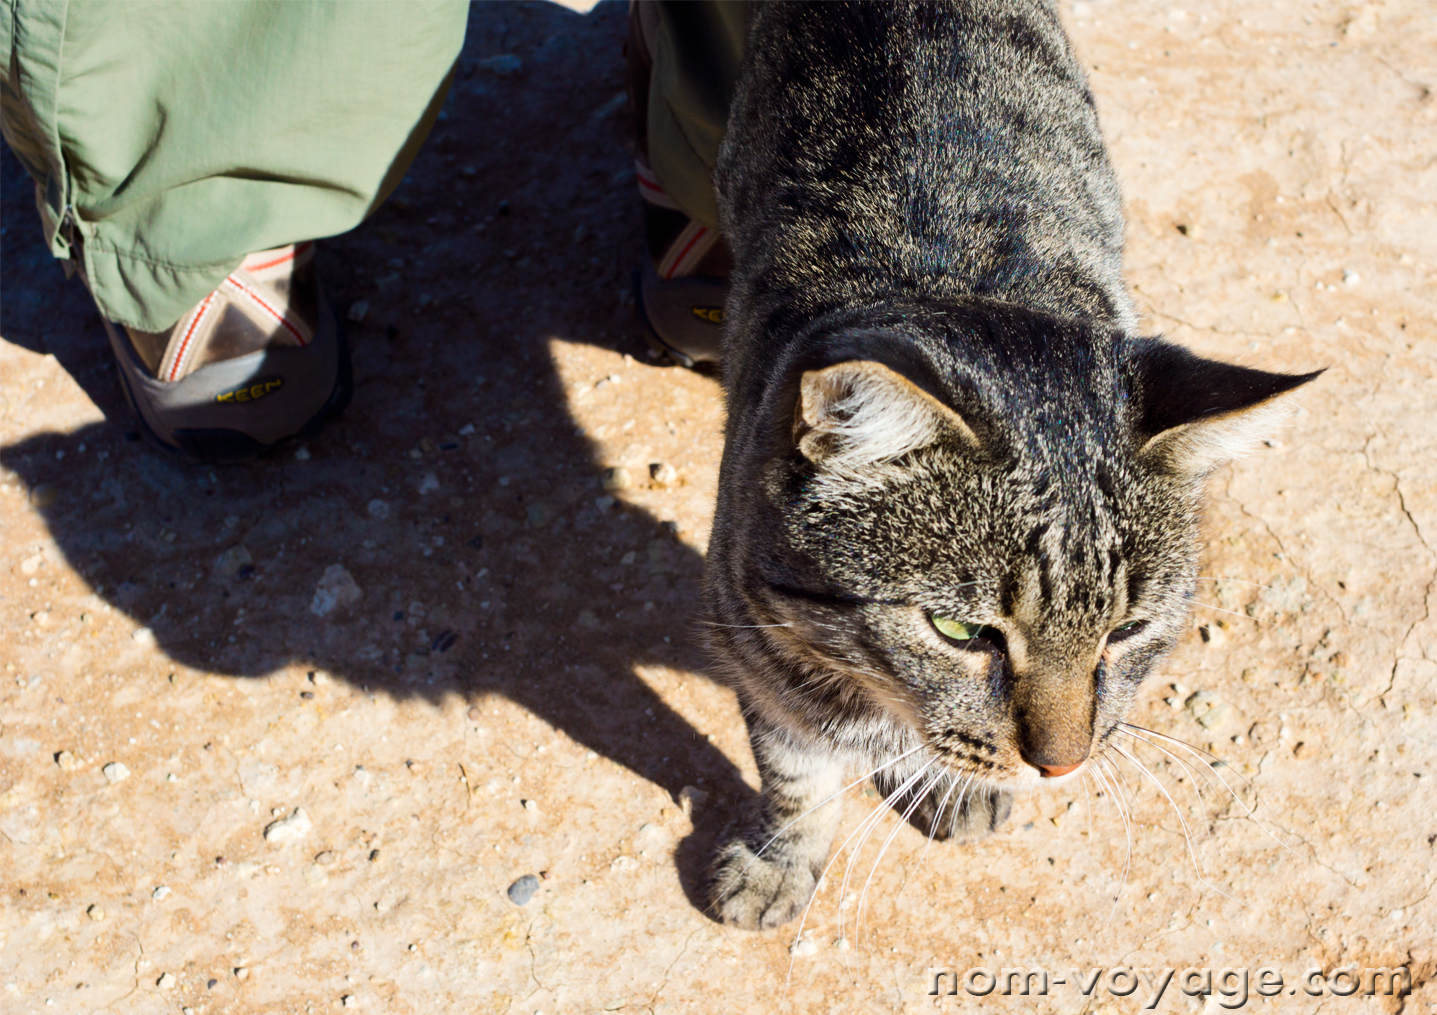 Super friendly rest stop kitty, living with the Berbers at the wells.